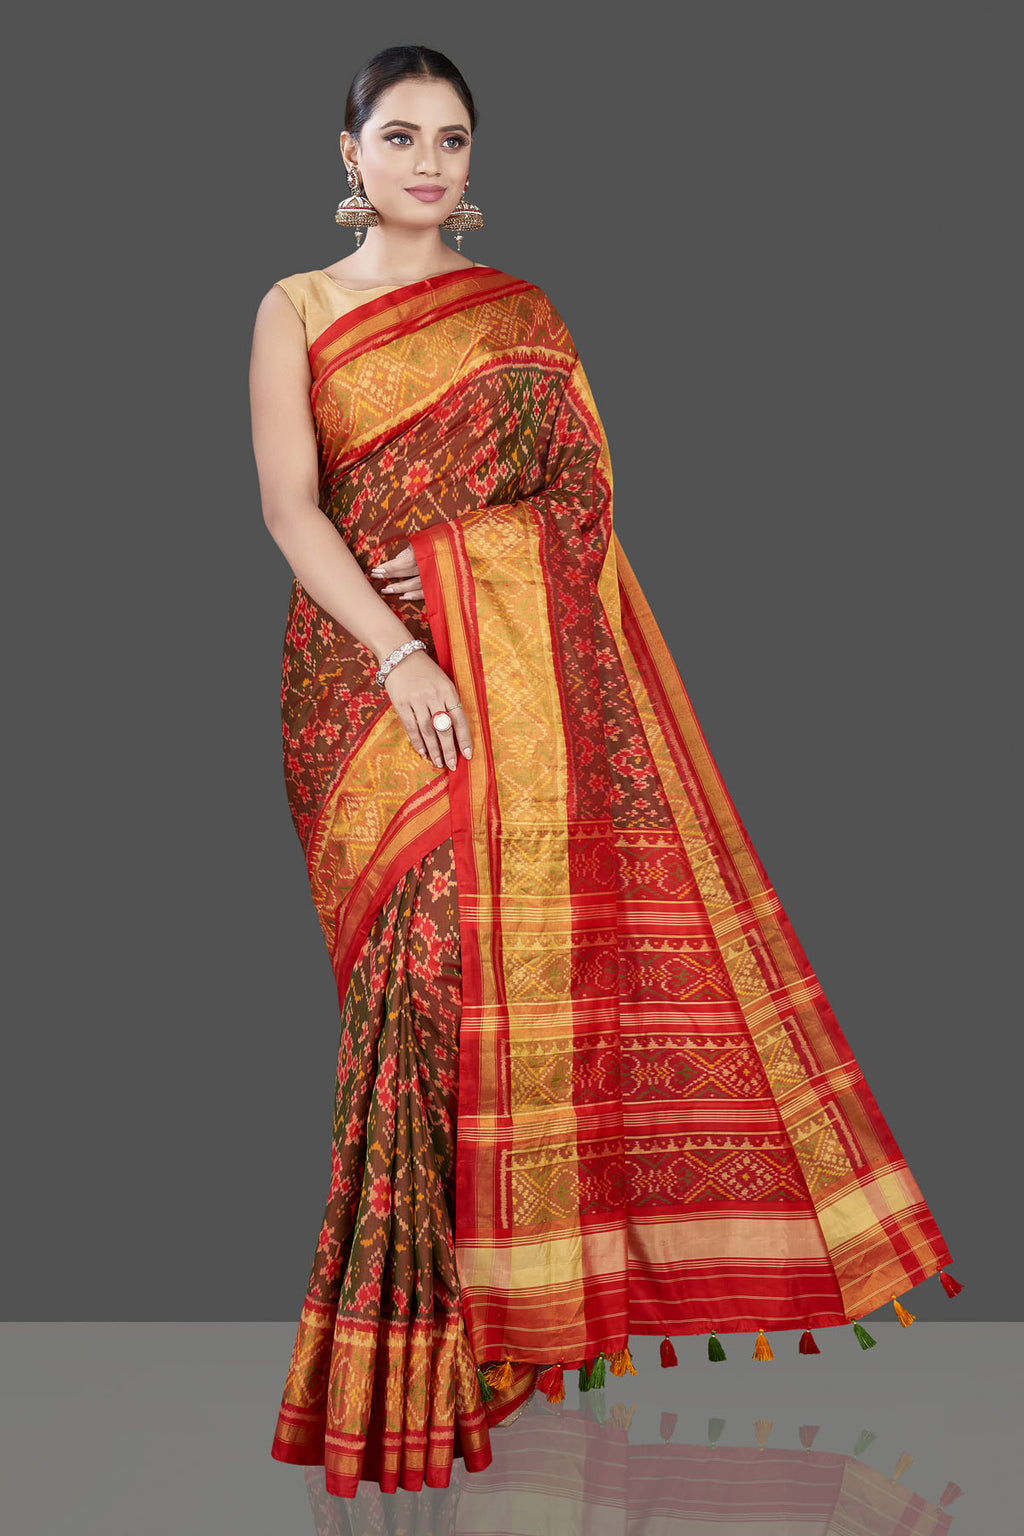 Shop beautiful brown Patola saree online in USA with golden zari border. Be the talk of the occasion in exquisite designer sarees, pure silk sarees, tussar saris, embroidered sarees, handloom sarees from Pure Elegance Indian fashion store in USA.-full view